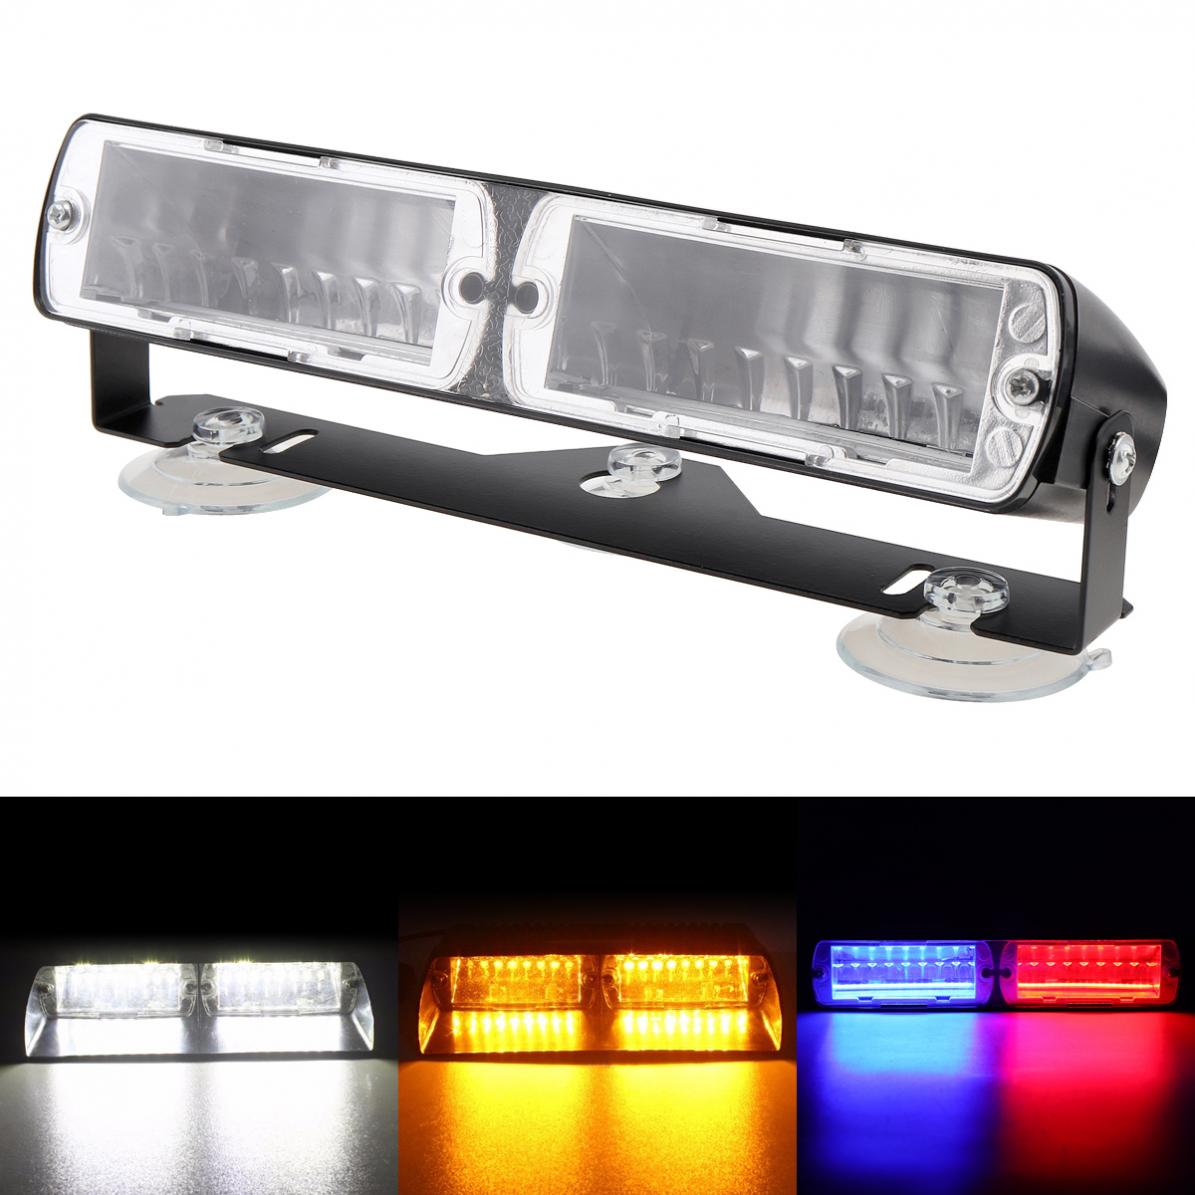 16LED 48W Viper S2 Super Bright Signal Flashing Led Warning Light <font><b>Police</b></font> Strobe Flash Emergency Lights image